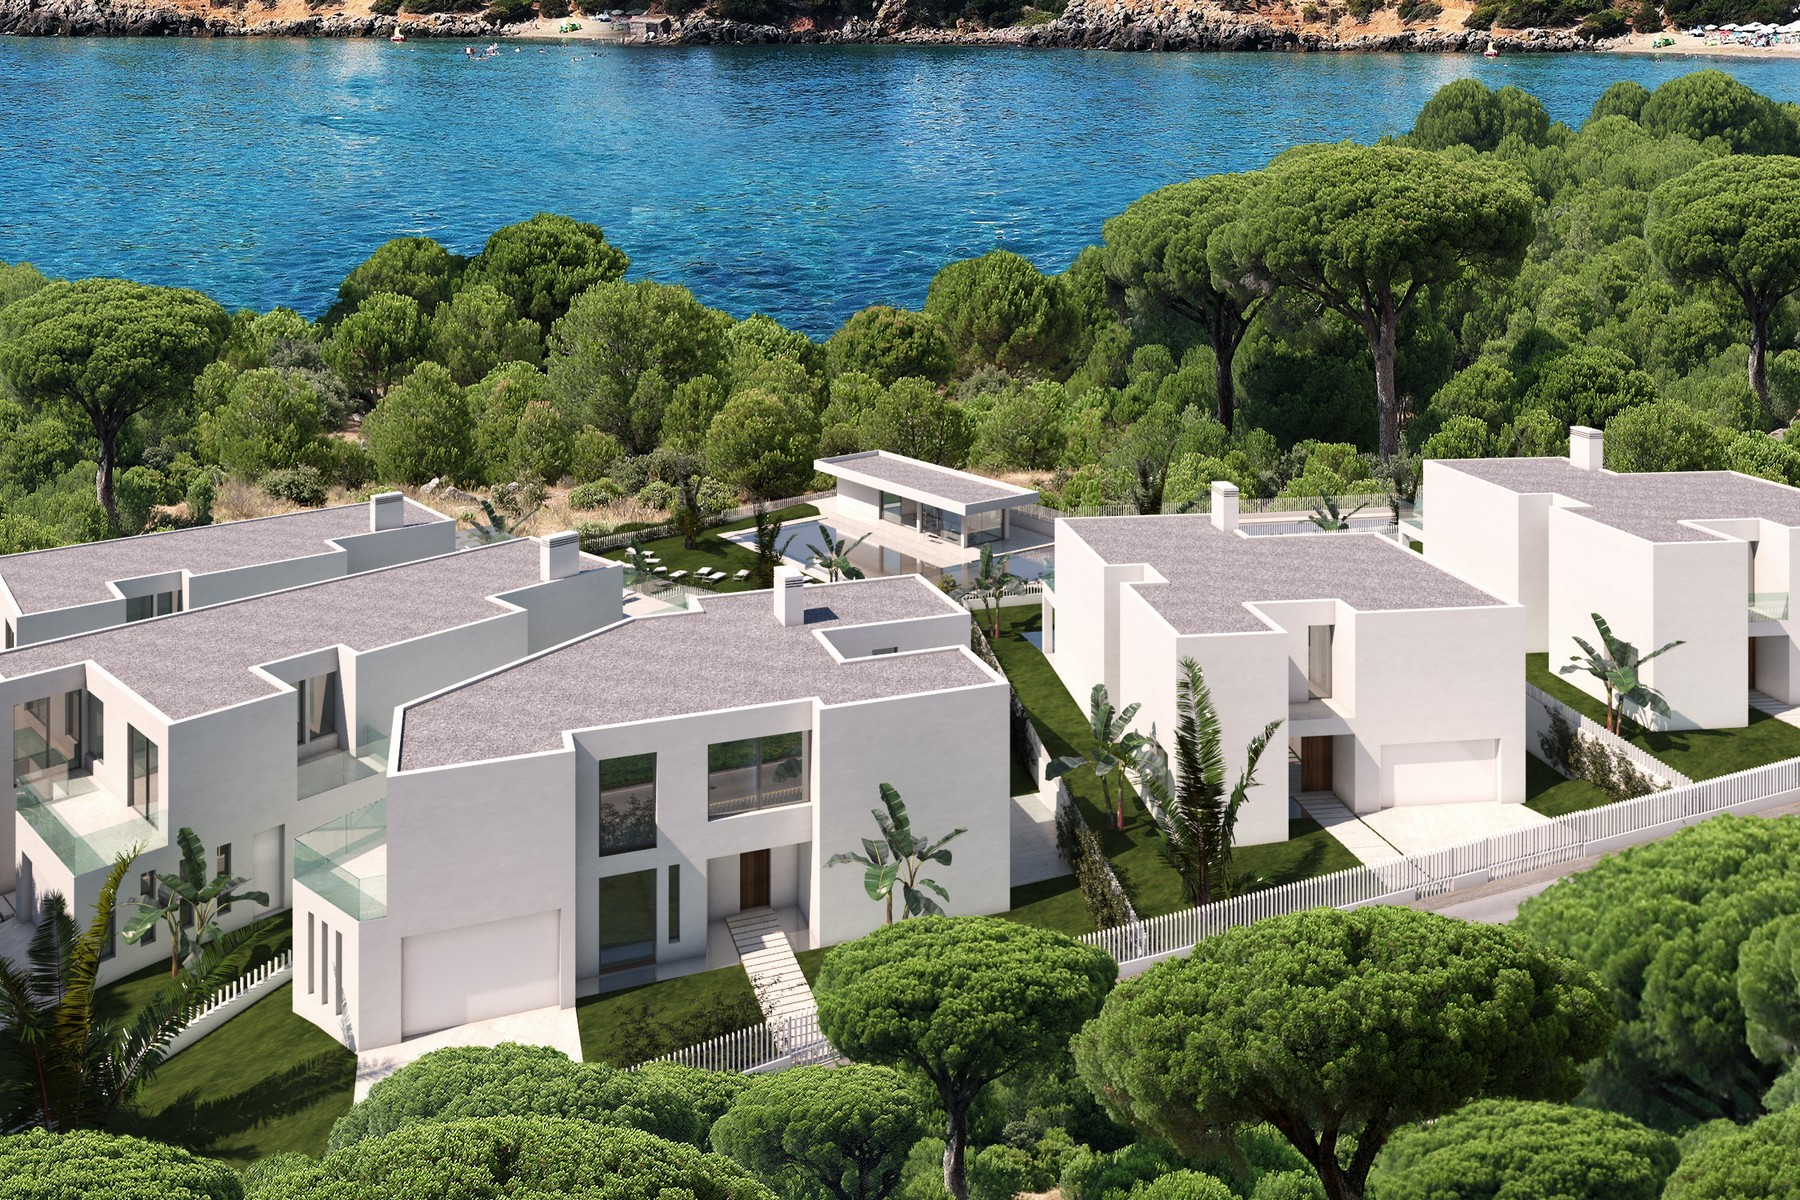 Moradia para Venda às Brand New Luxury Villas Close To Sea Cala Lleña Santa Eulalia, Ibiza, 07850 Espanha